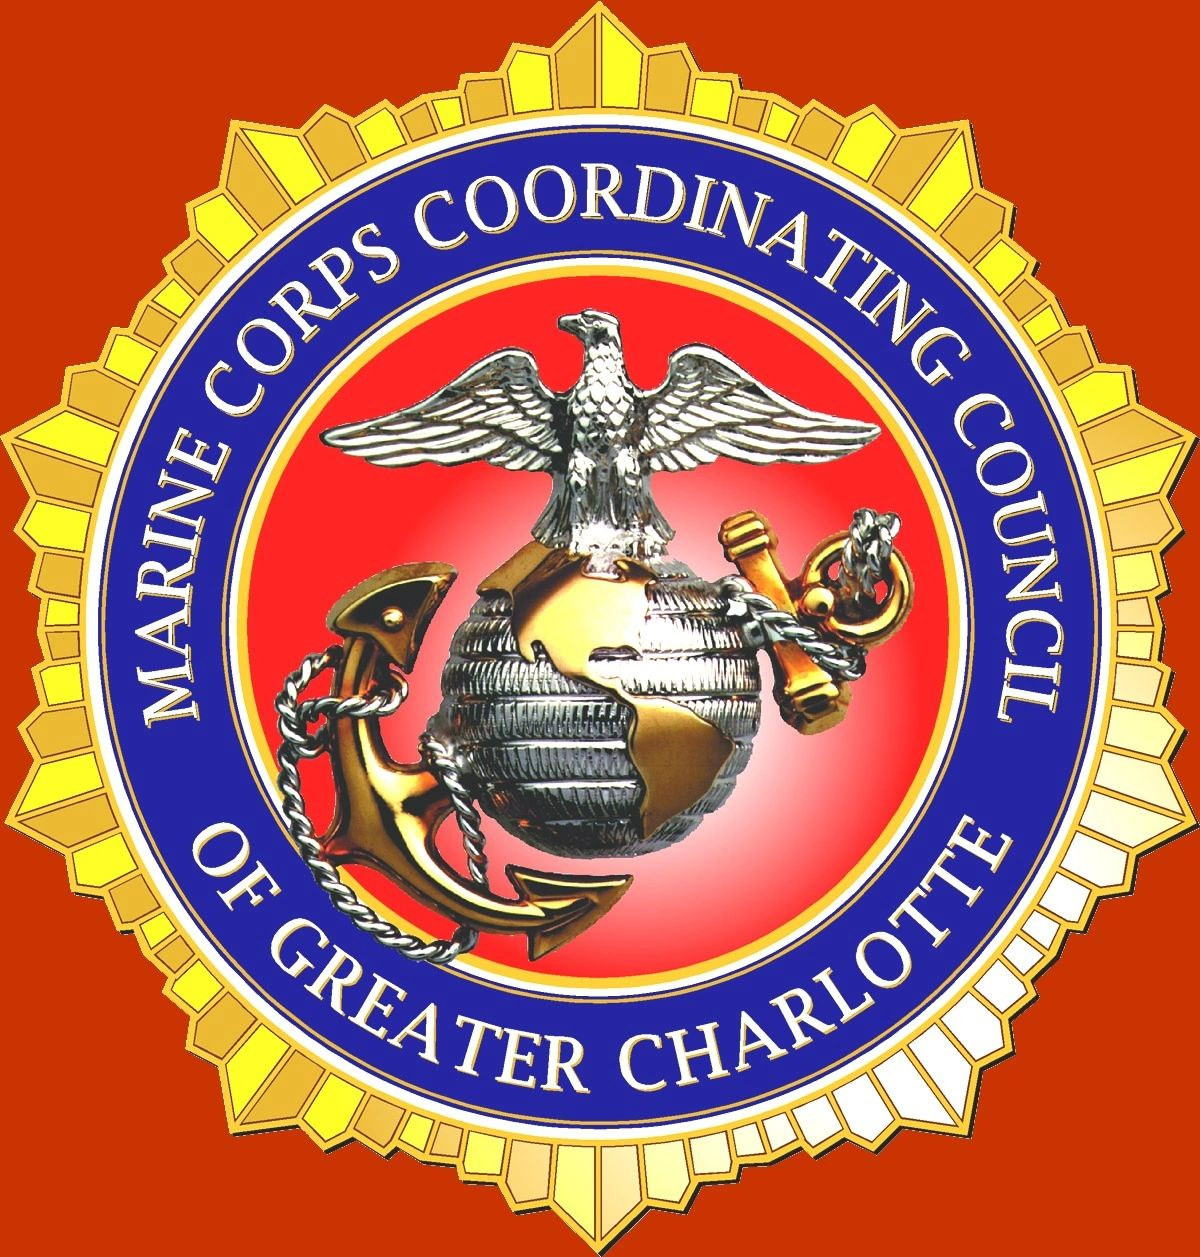 Marine Corps Coordinating Council of Greater Charlotte aka Carolina Marines